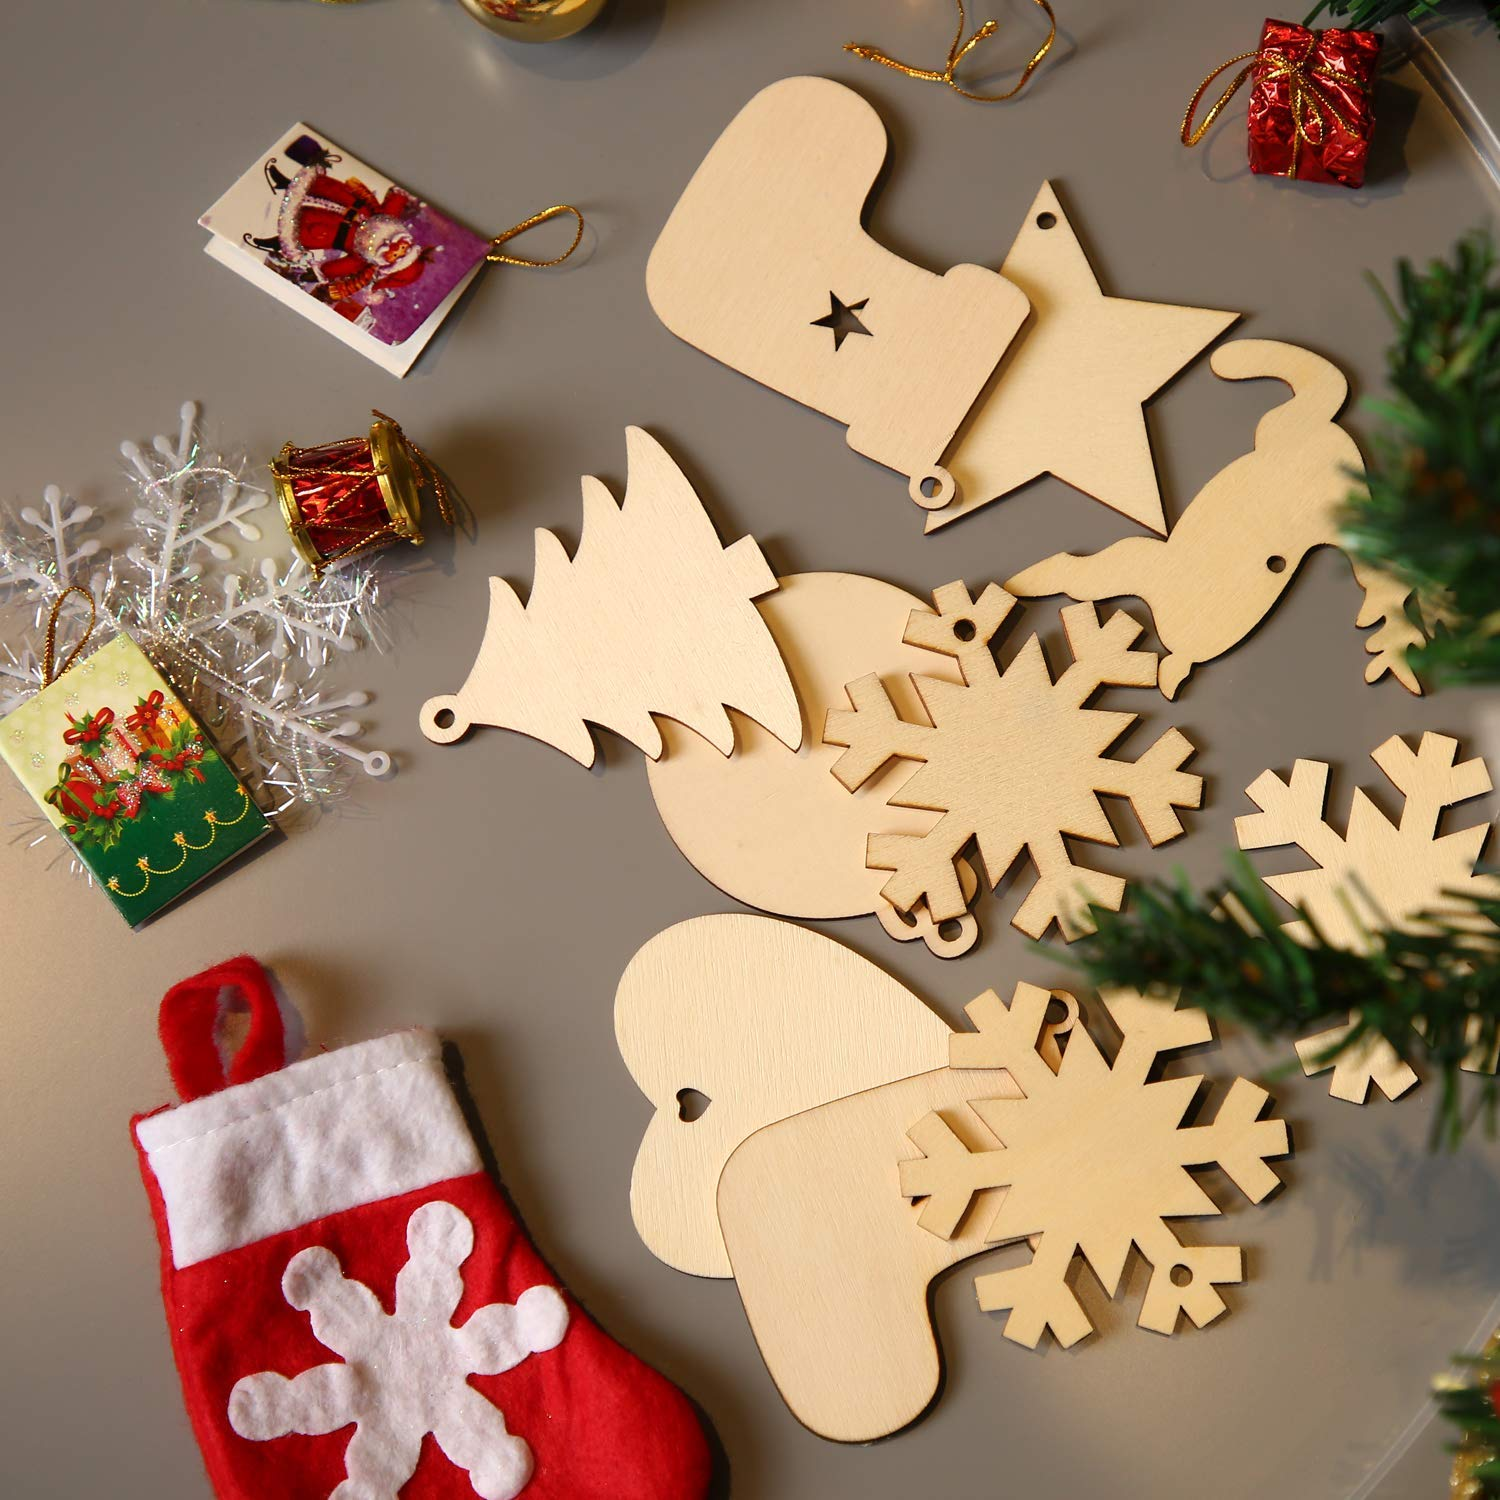 Doll Snowflake 60pcs Unfinished Wood Christmas Ornaments with Holes Wood Crafts to Paint DIY Christmas Hanging Decoration Star Christmas Tree Deer Ball